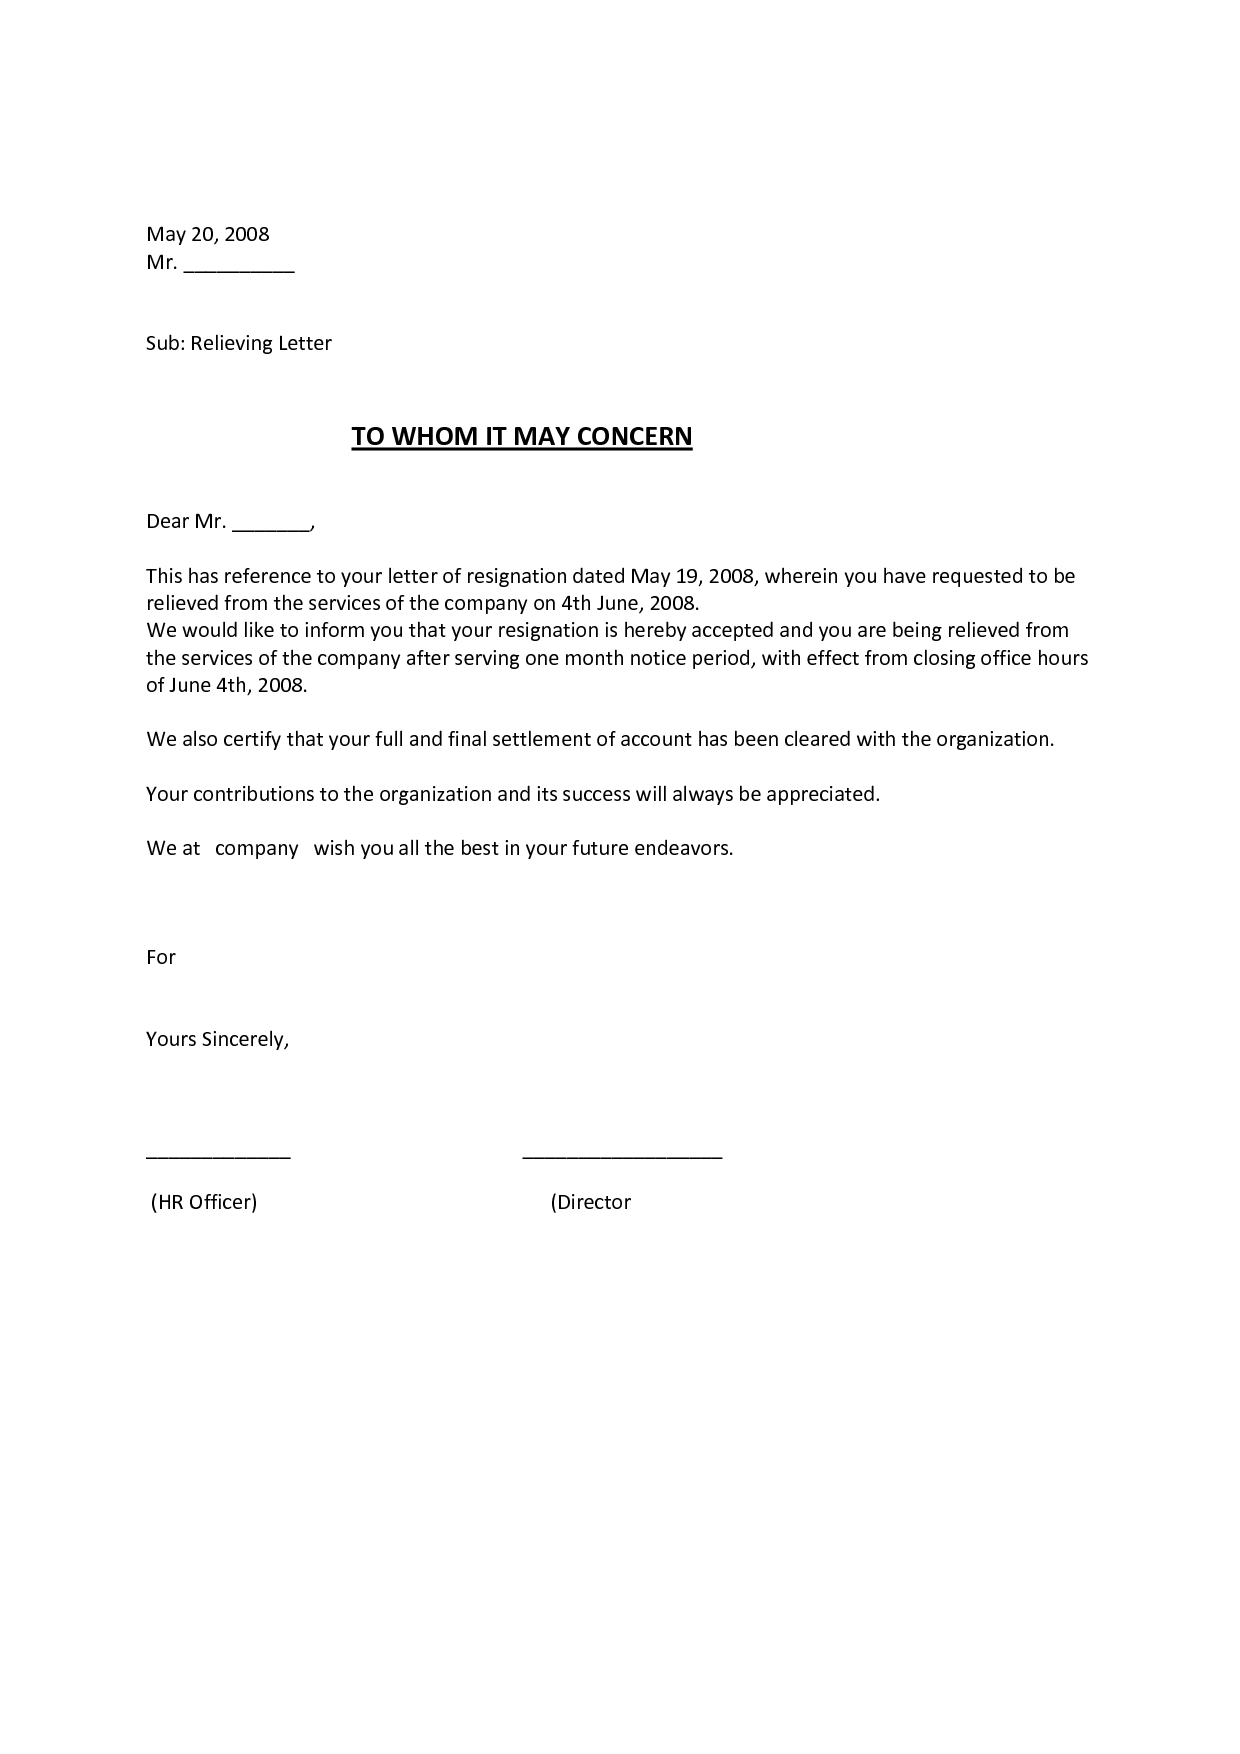 No Objection Letter Format For Employer Templatebillybullockus Resume  Template Doc   Billybullock.  No Objection Certificate Template